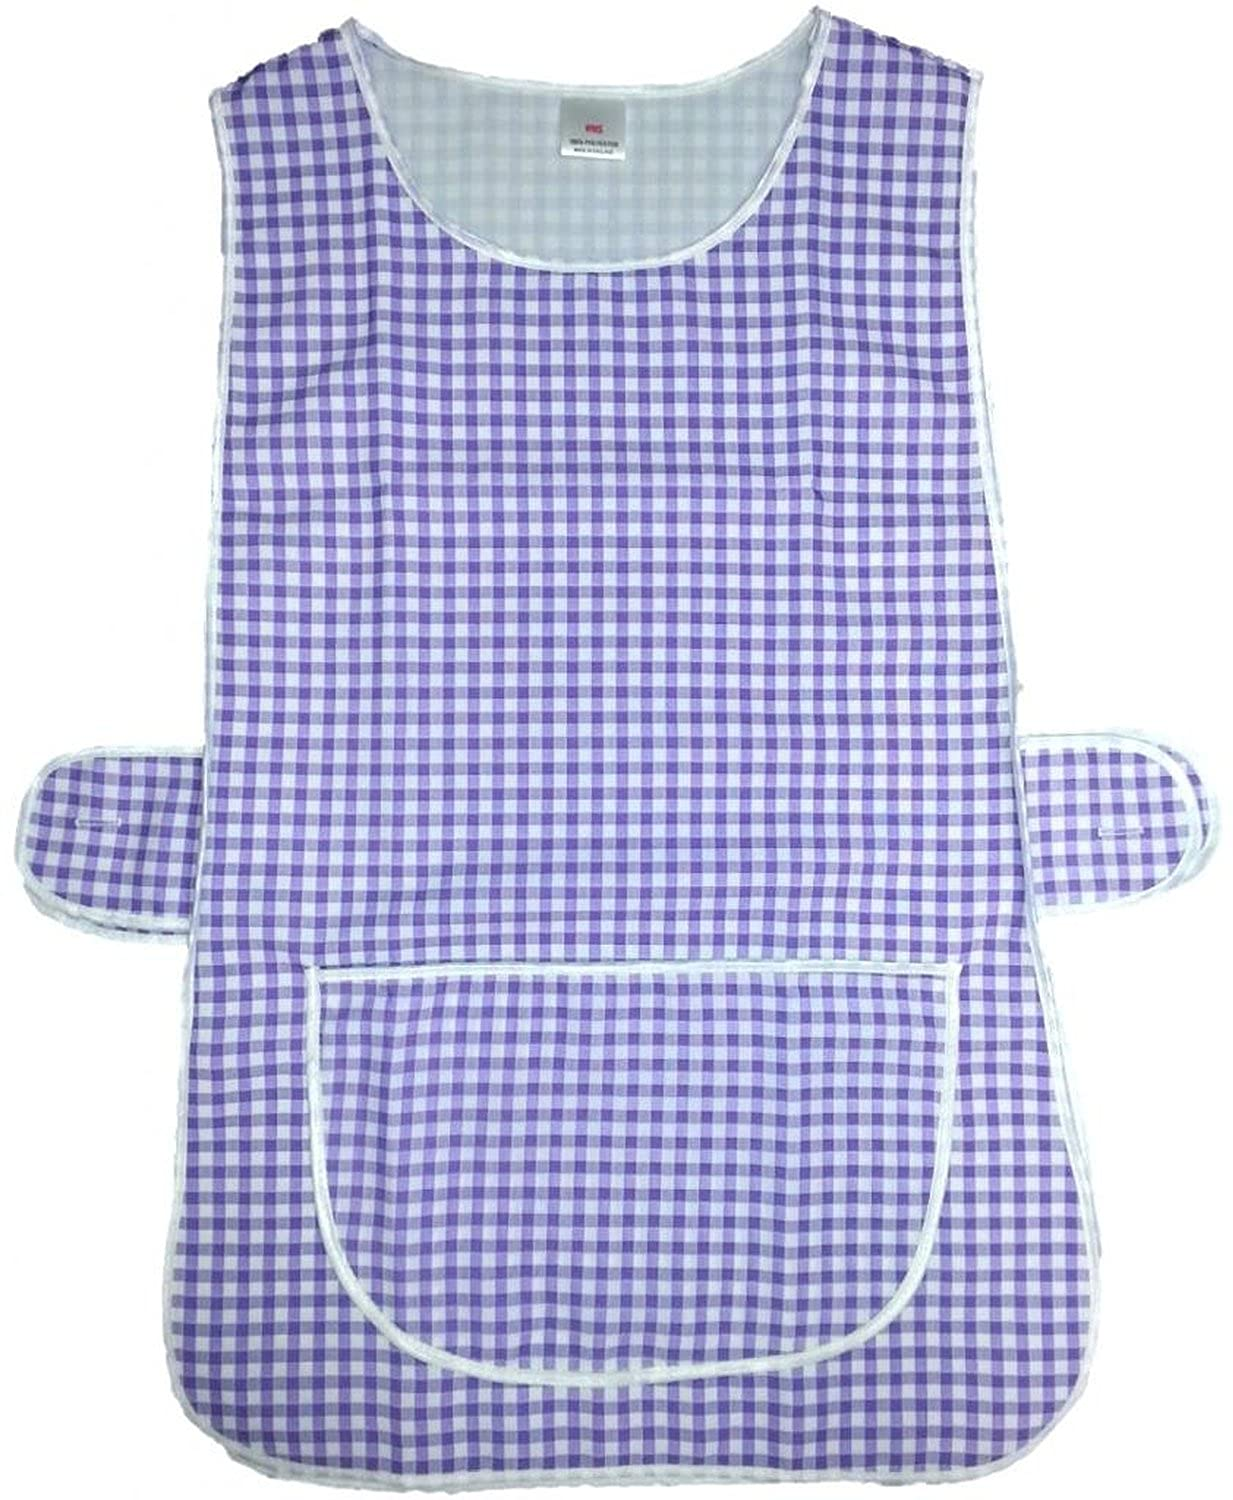 White tabard apron - Hduk Top Quality Gingham Check Home Work Tabard Apron With Large Front Pocket White